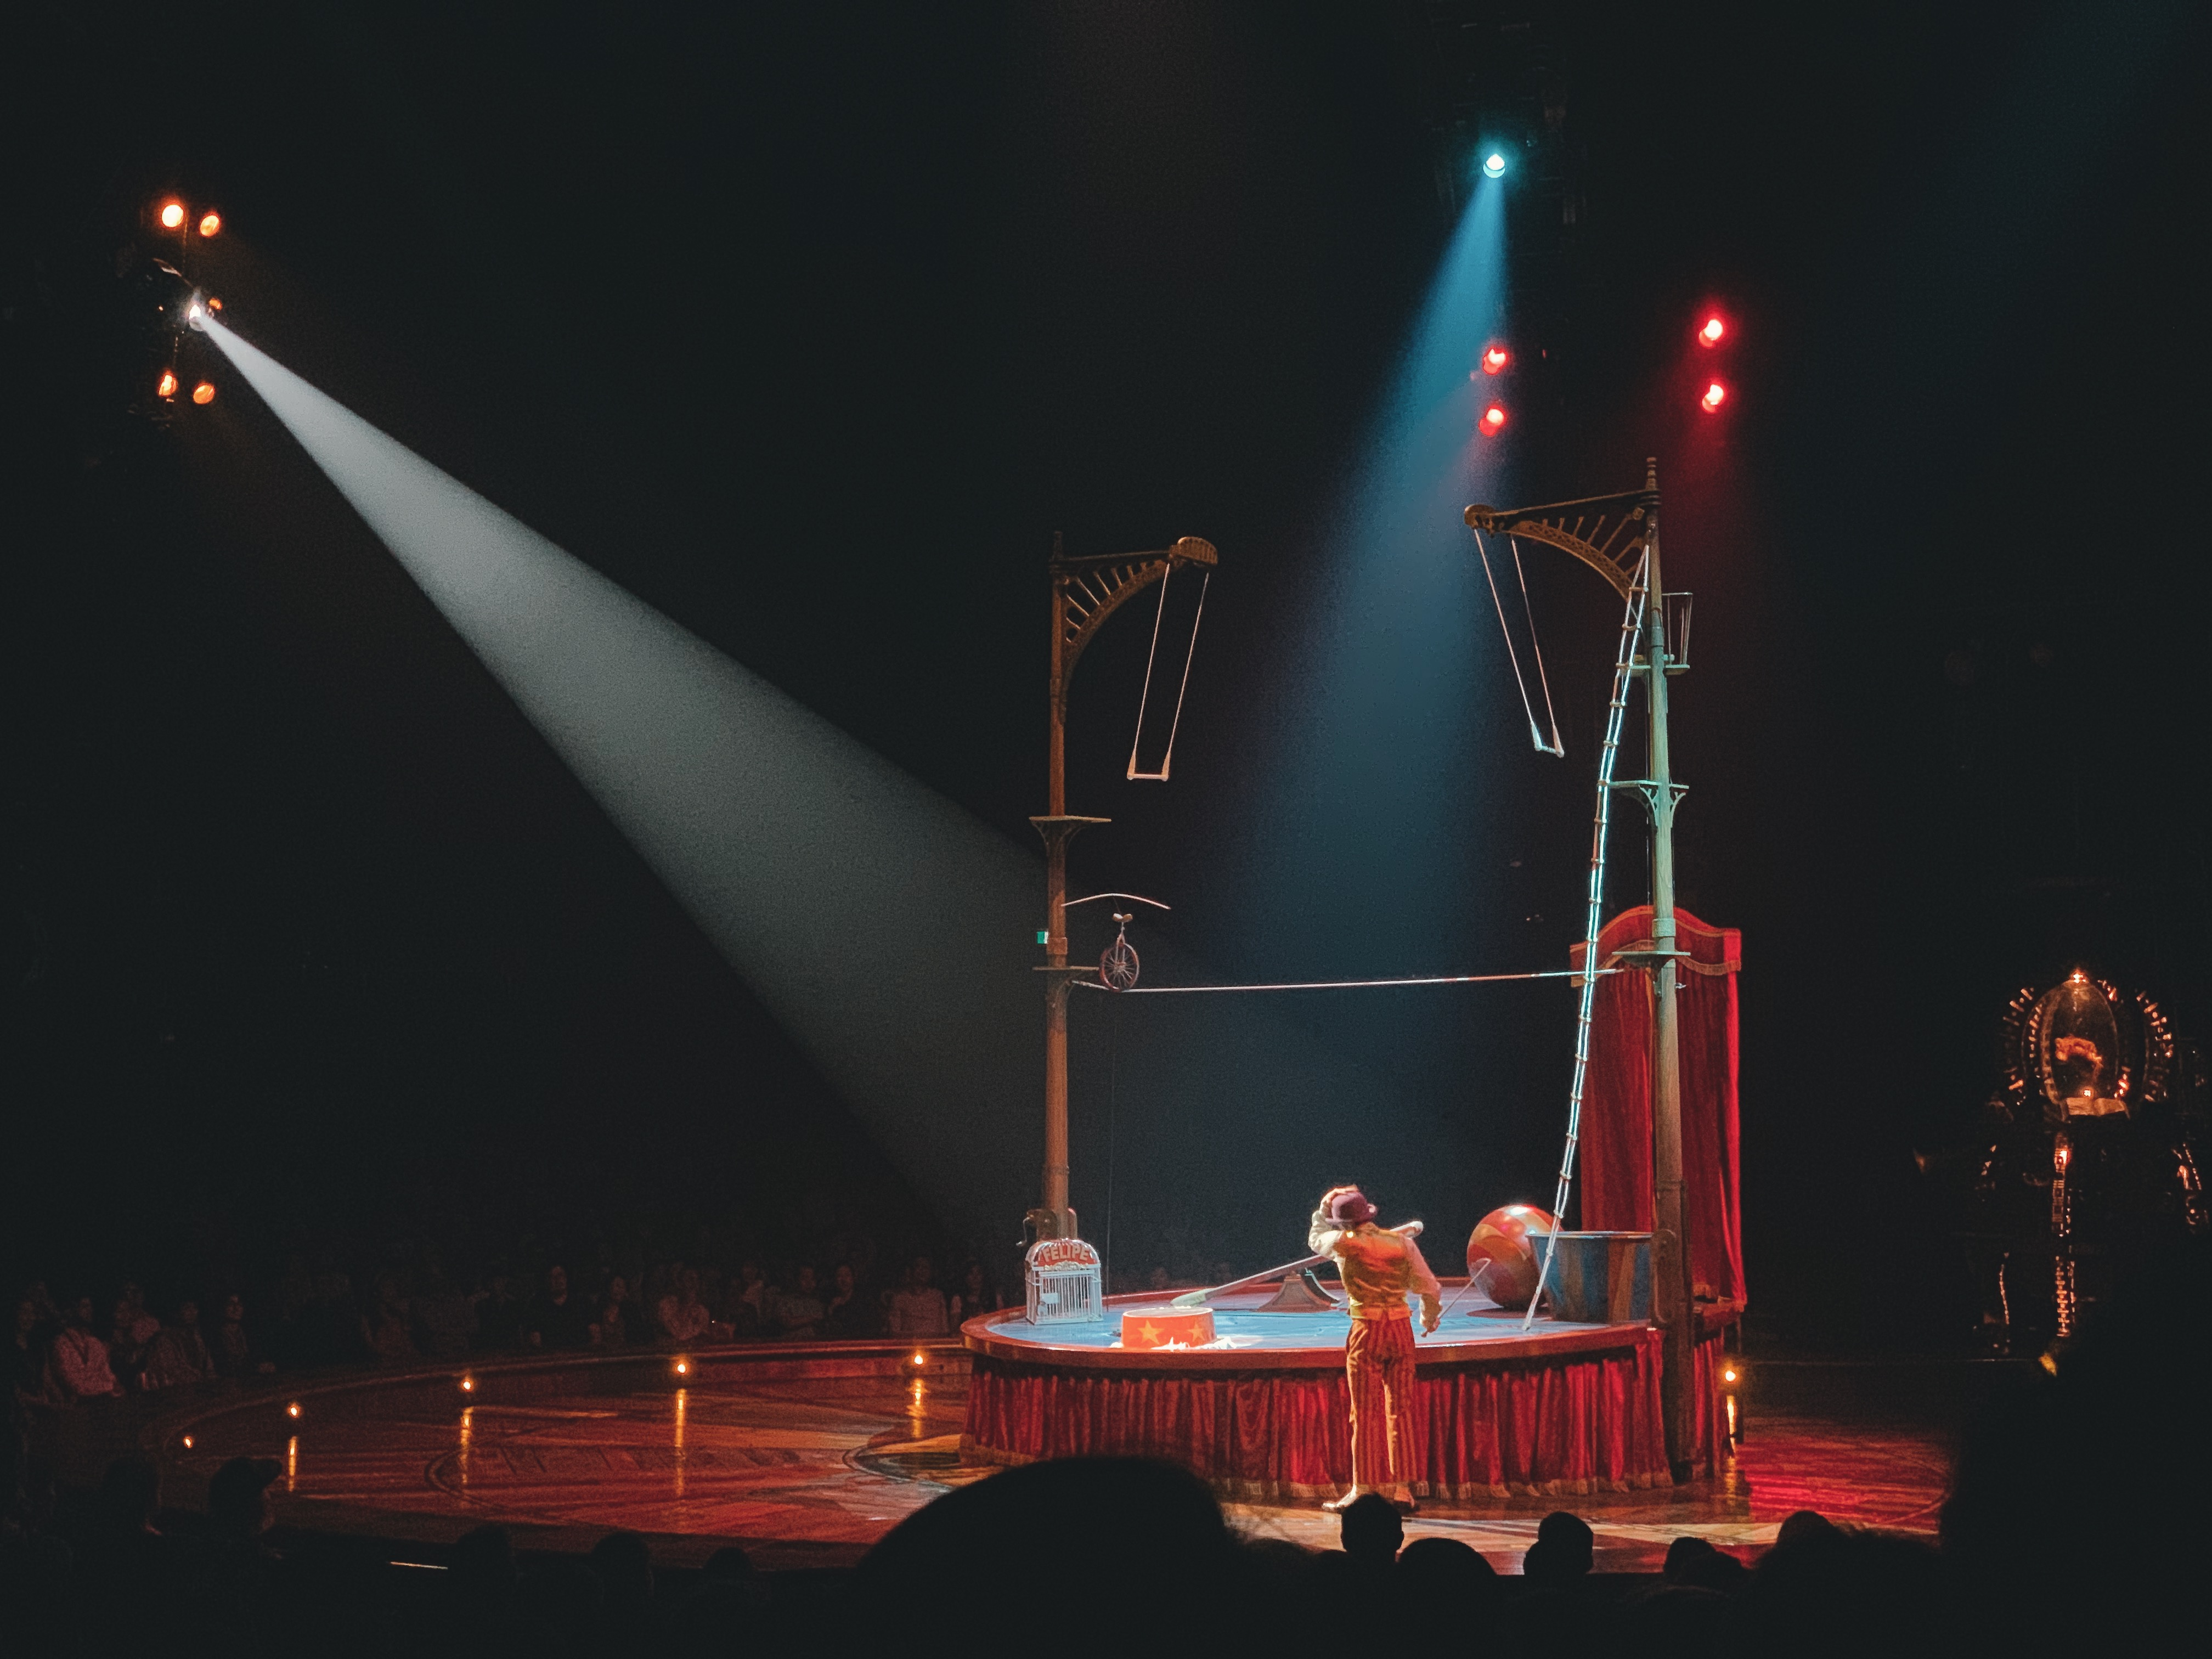 The invisible circus was an act we... never saw... Photo: Connected to India